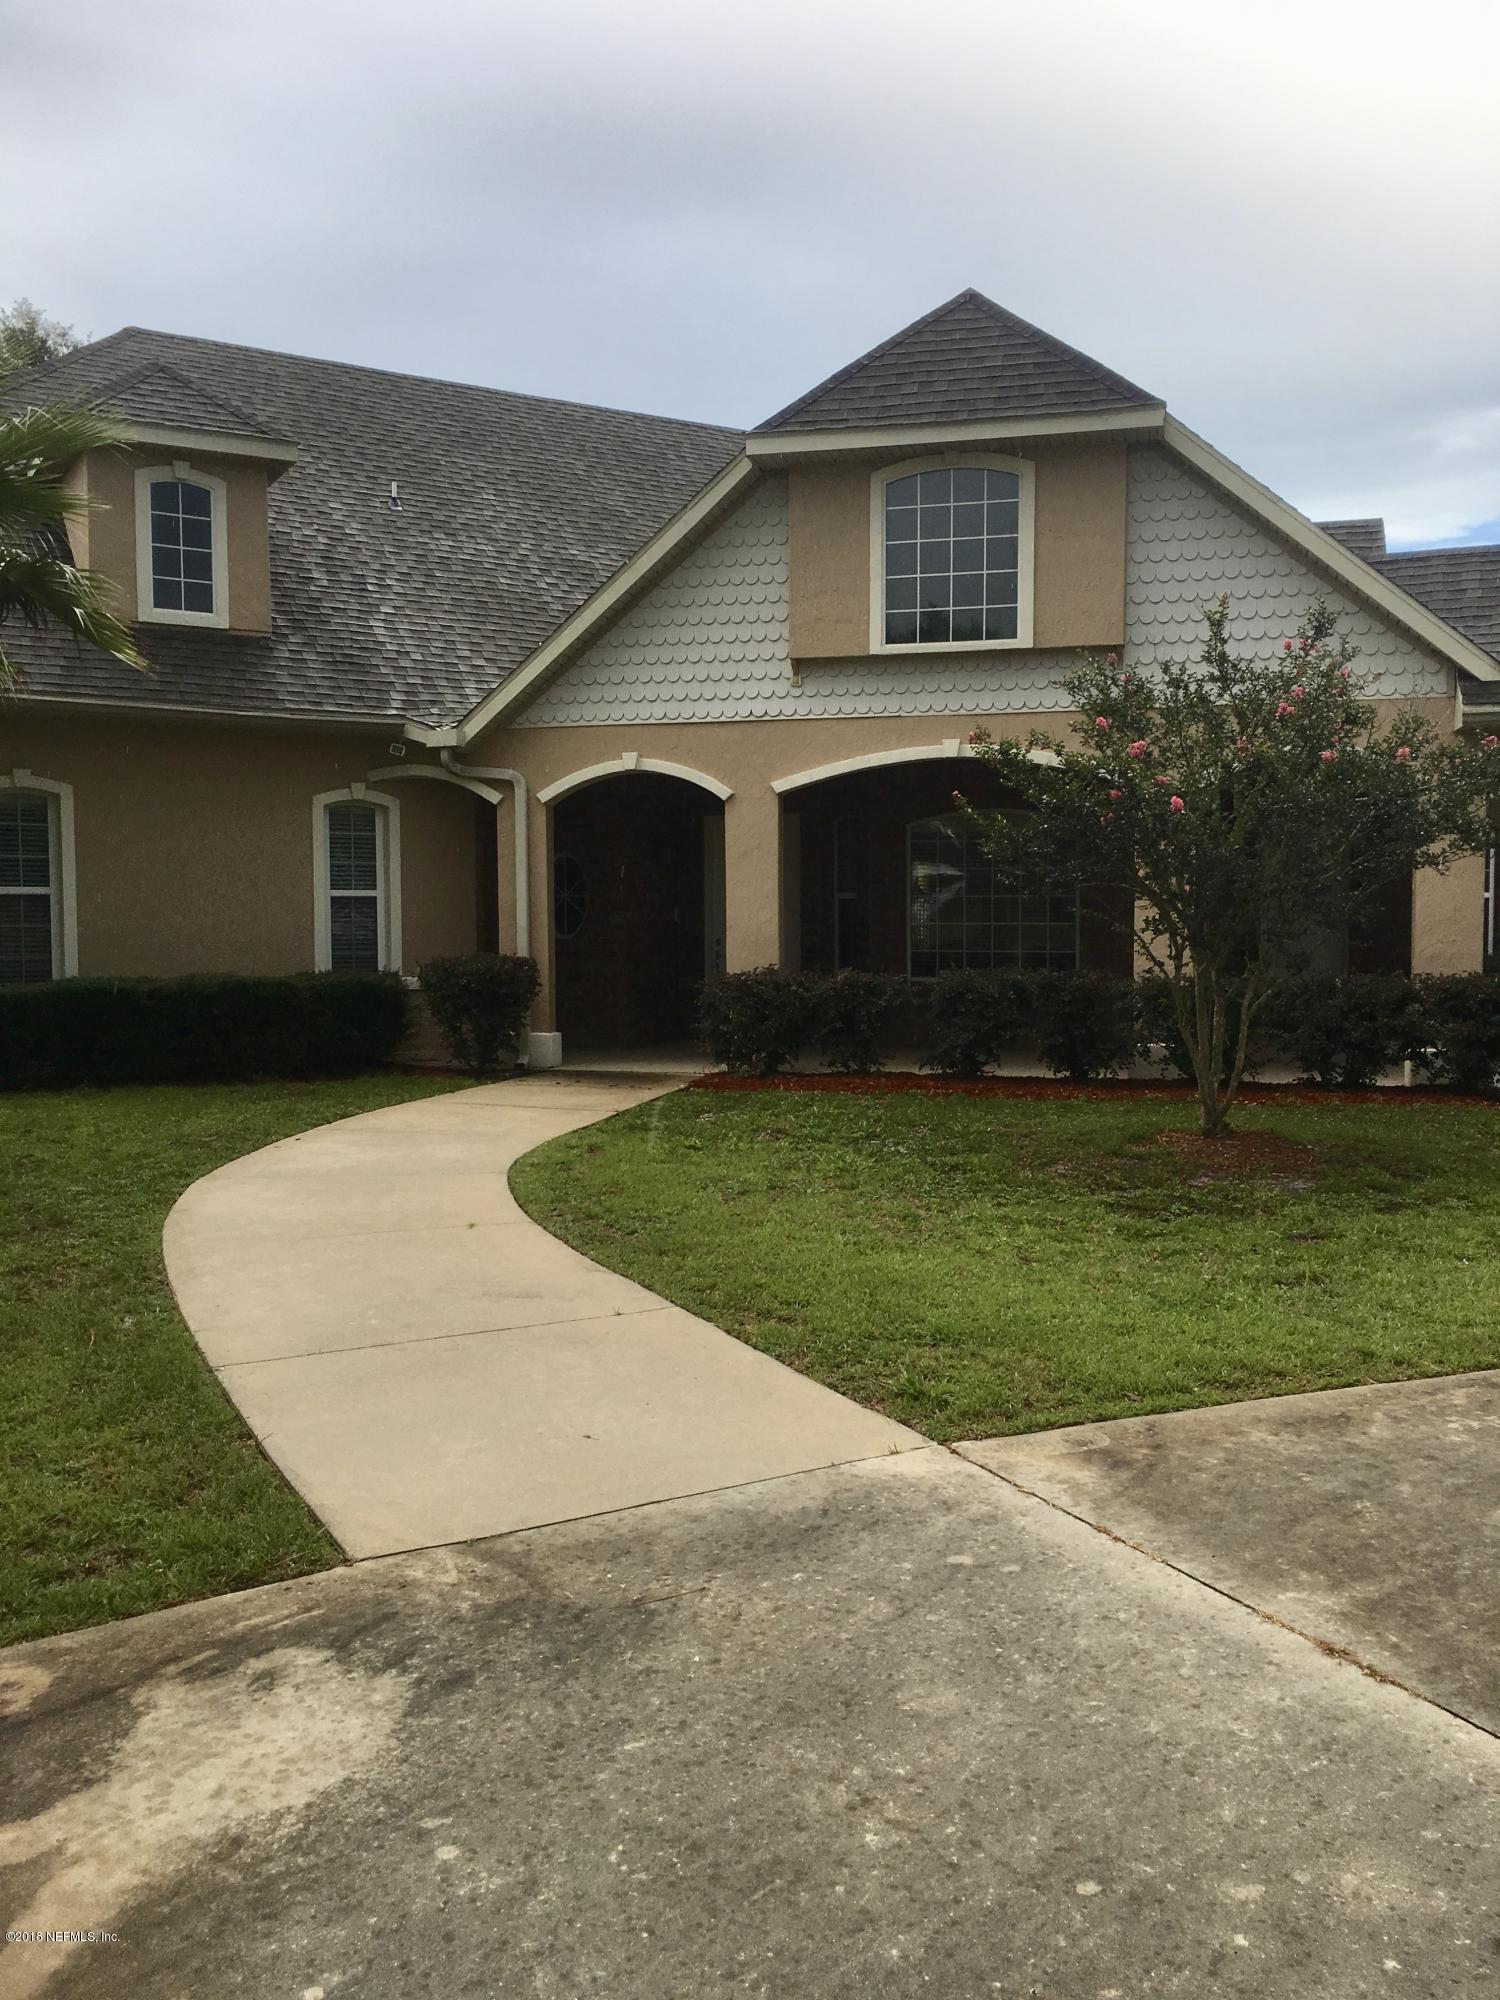 6701 SMOOTH BORE, GLEN ST. MARY, FLORIDA 32040, 4 Bedrooms Bedrooms, ,3 BathroomsBathrooms,Residential - single family,For sale,SMOOTH BORE,945871